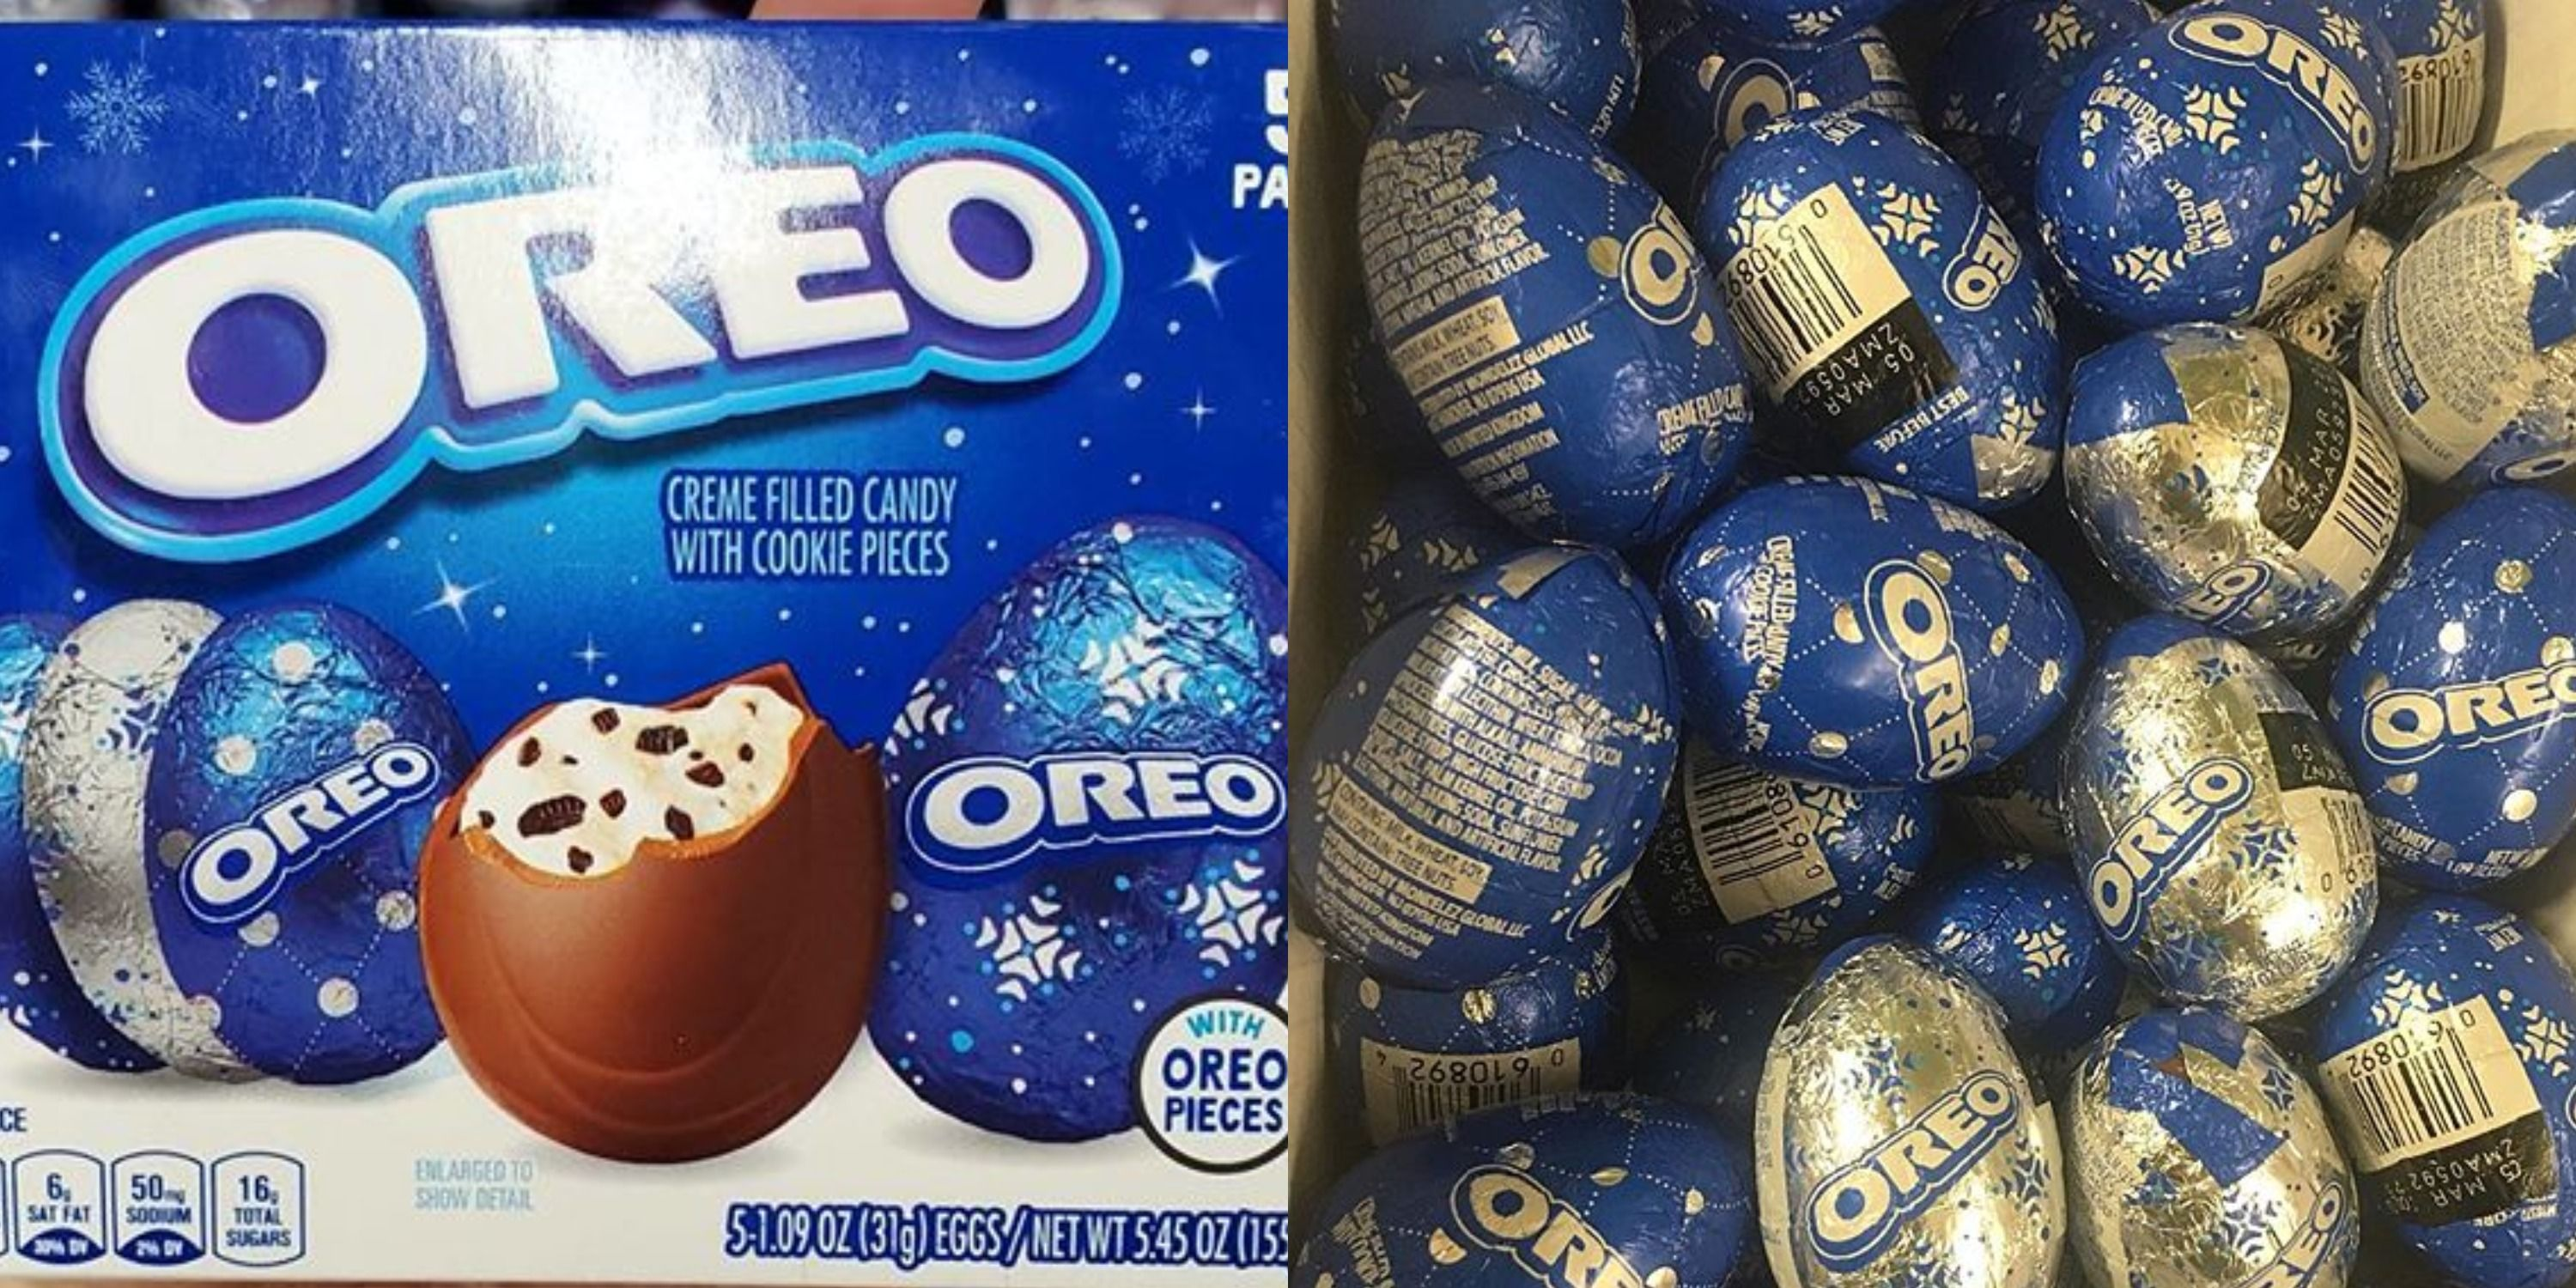 Oreo Chocolate Eggs Are Back On Shelves This Winter Proving They're Not Just For Easter